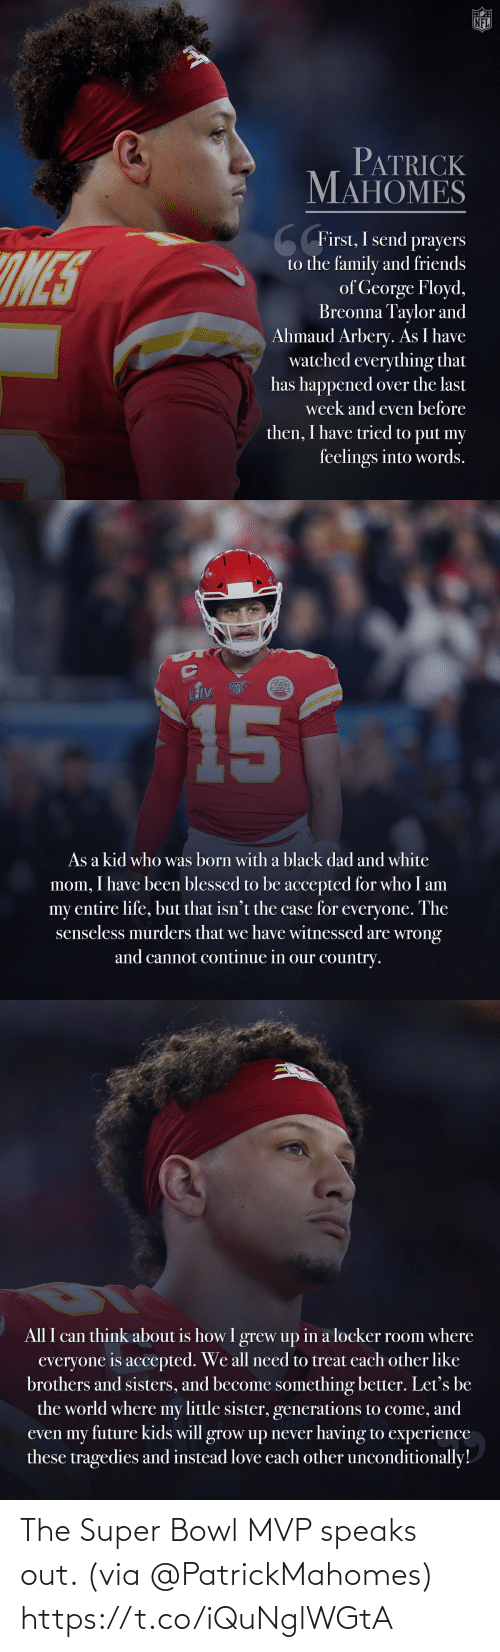 Super Bowl: The Super Bowl MVP speaks out. (via @PatrickMahomes) https://t.co/iQuNglWGtA